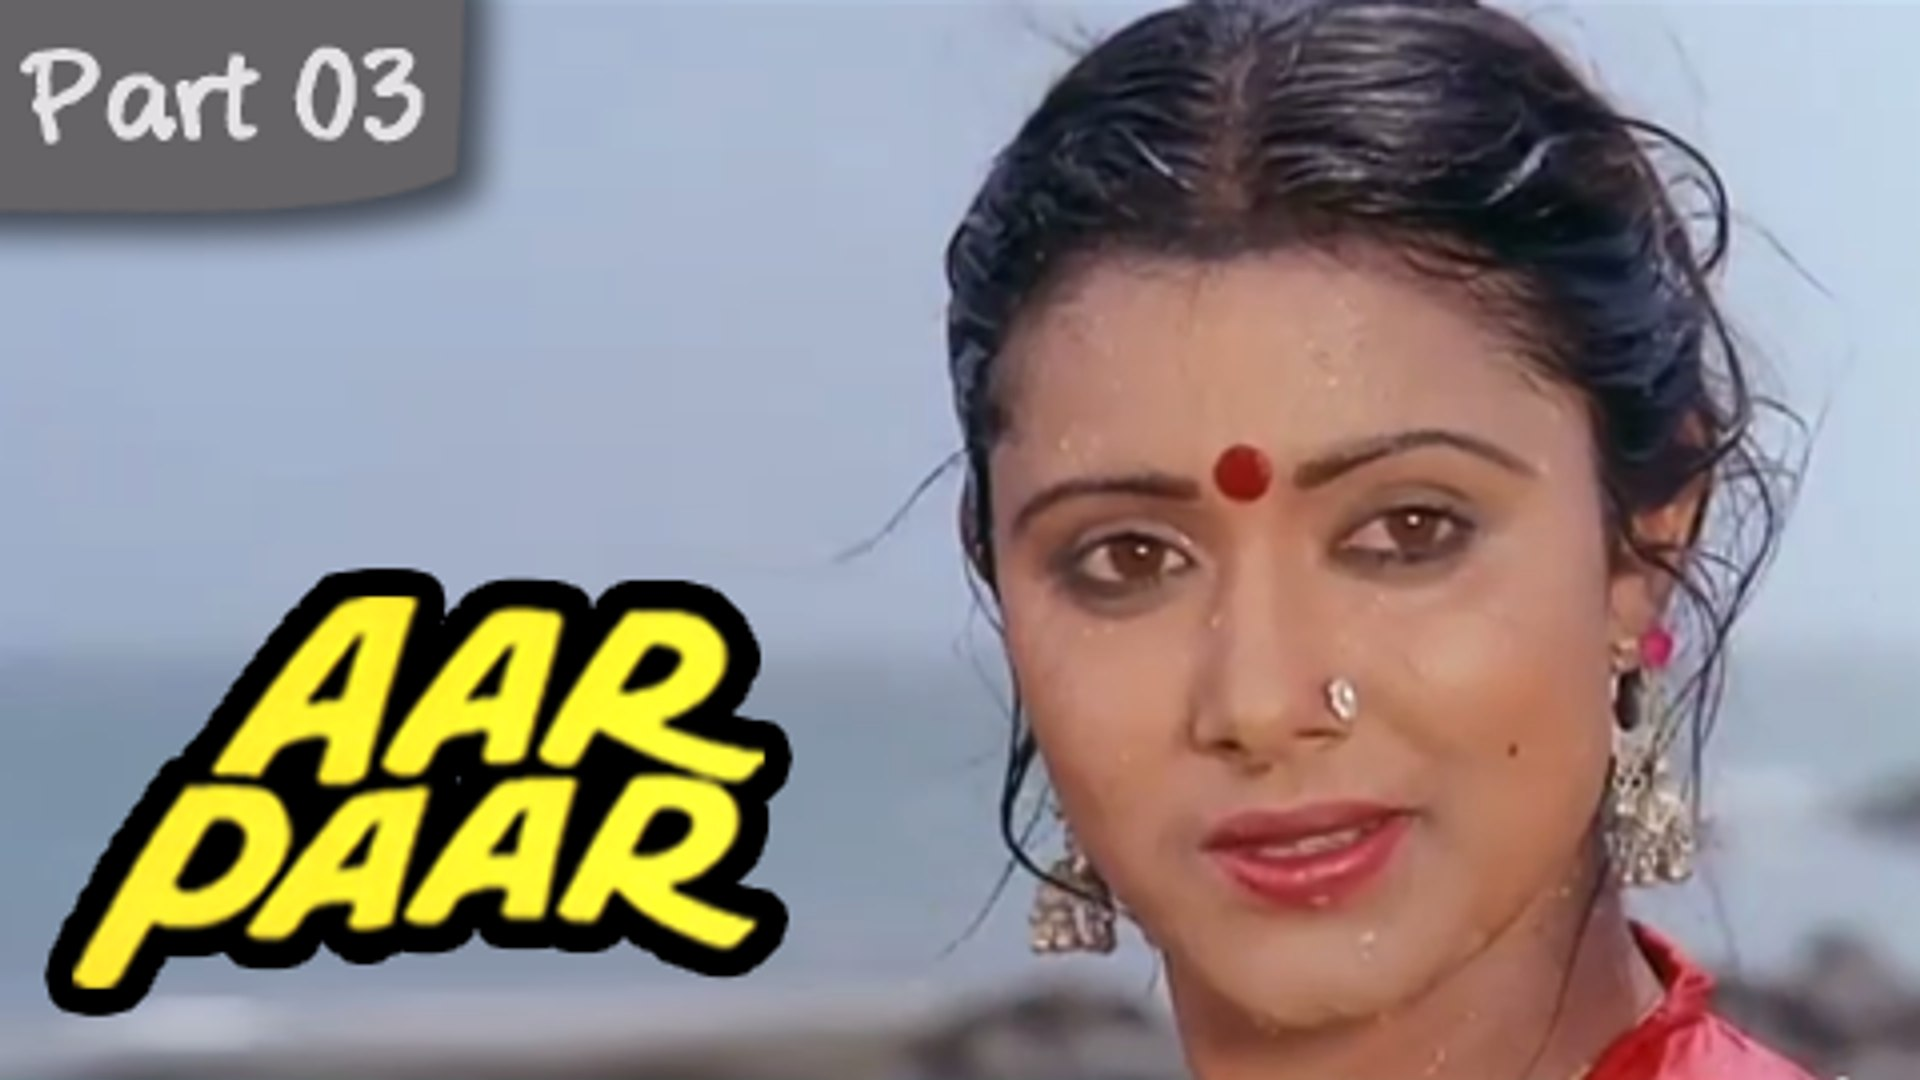 Aar Paar - Part 03/11 - Classic Blockbuster Hindi Movie - Mithun Chakraborty, Nutan